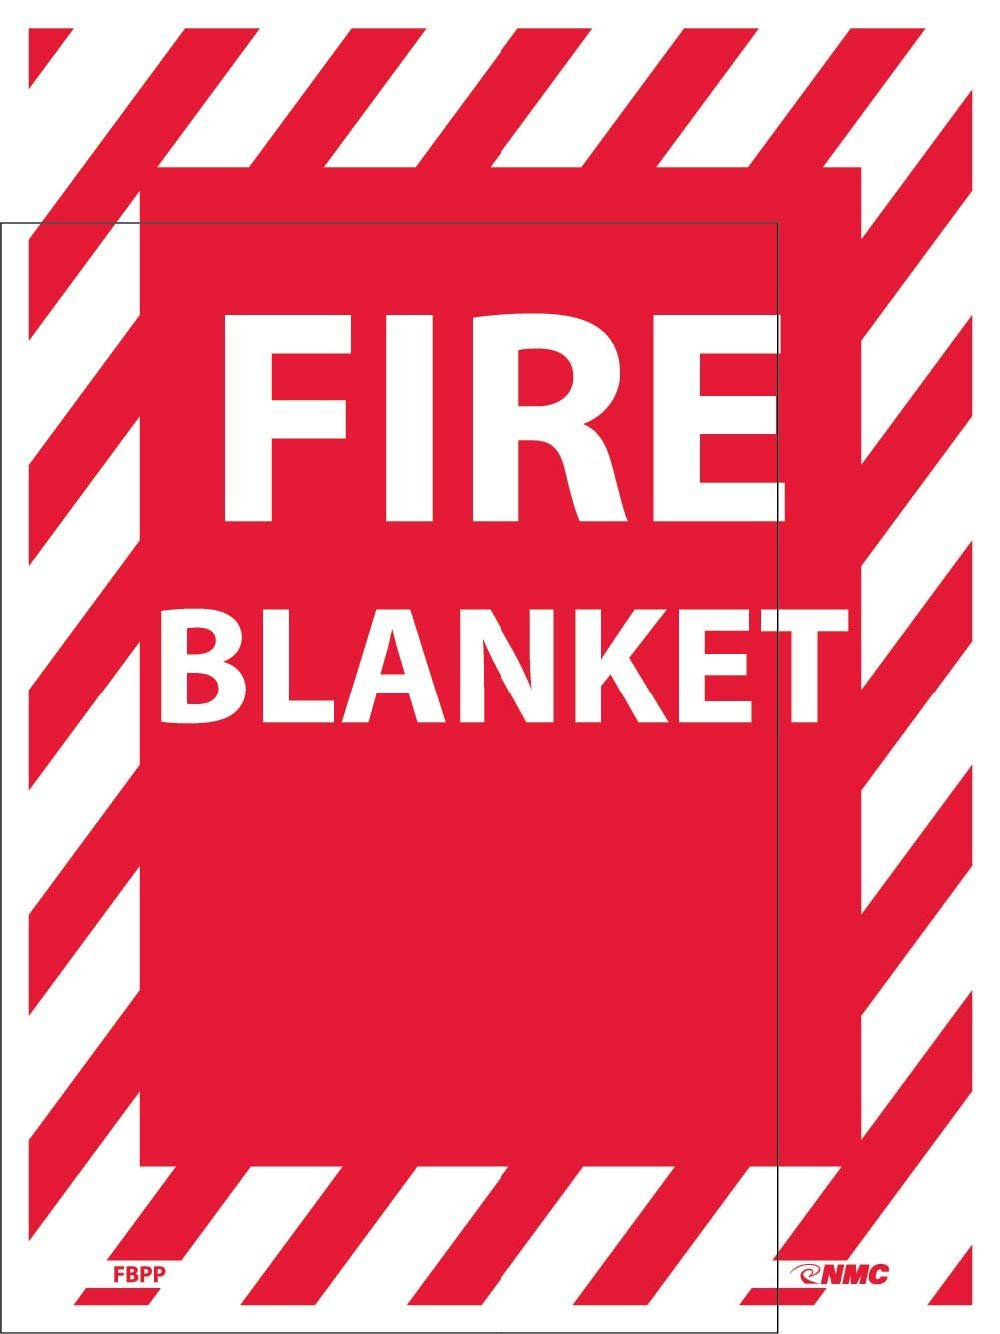 NMC FBPP FIRE Blanket Sign - 9 in. x 12 in. Adhesive Backed Vinyl Fire Safety Sign with White Text on Red Base